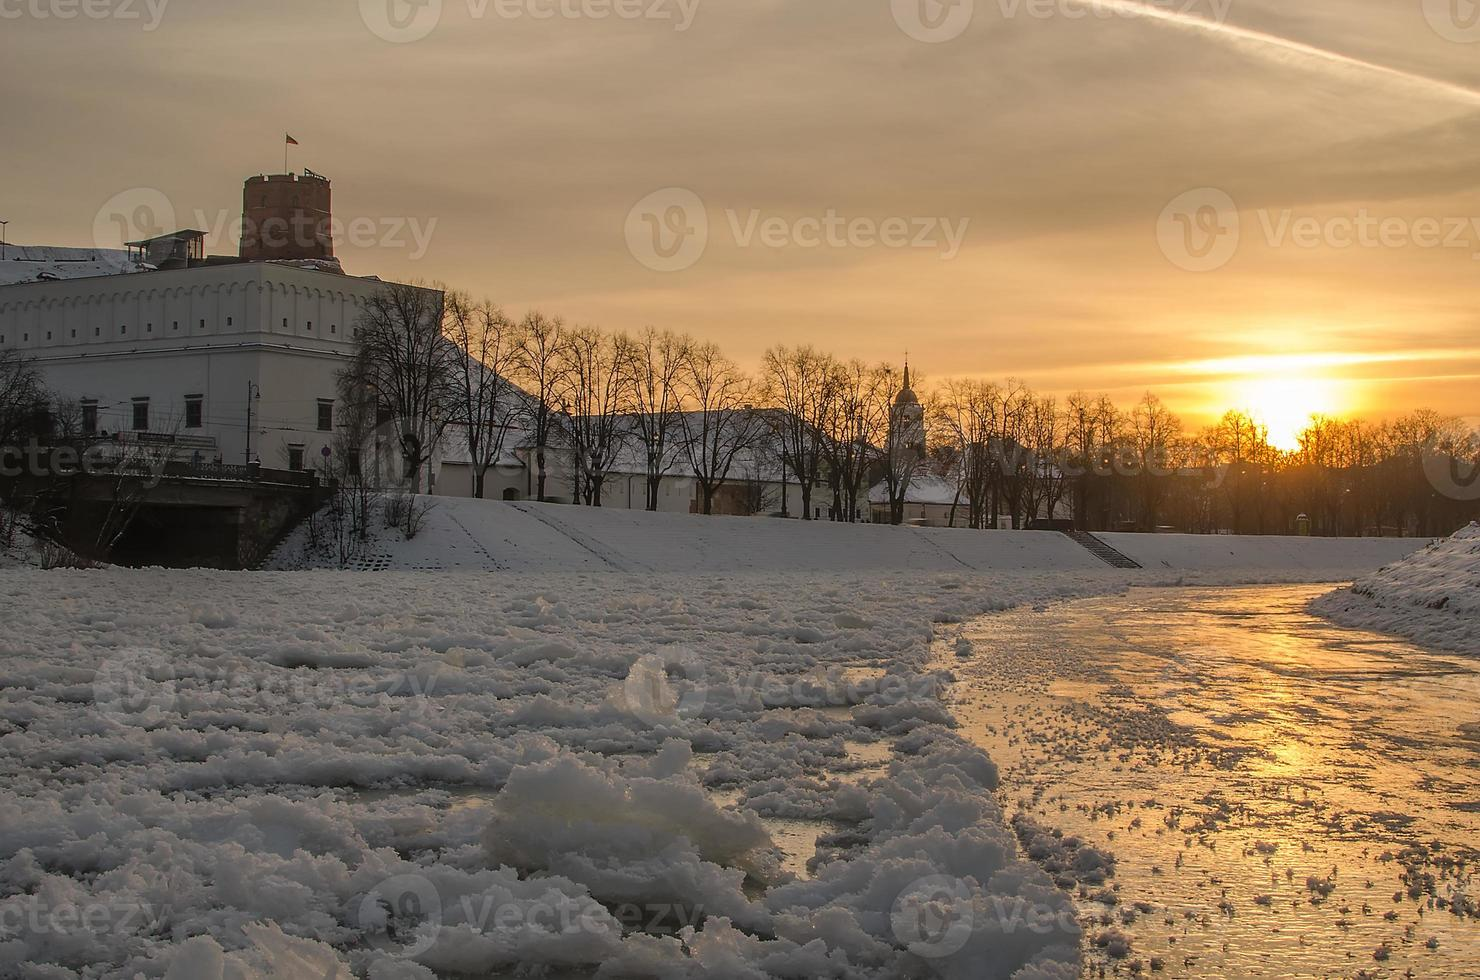 Vilnius (Lithuania) in the sunset of winter photo